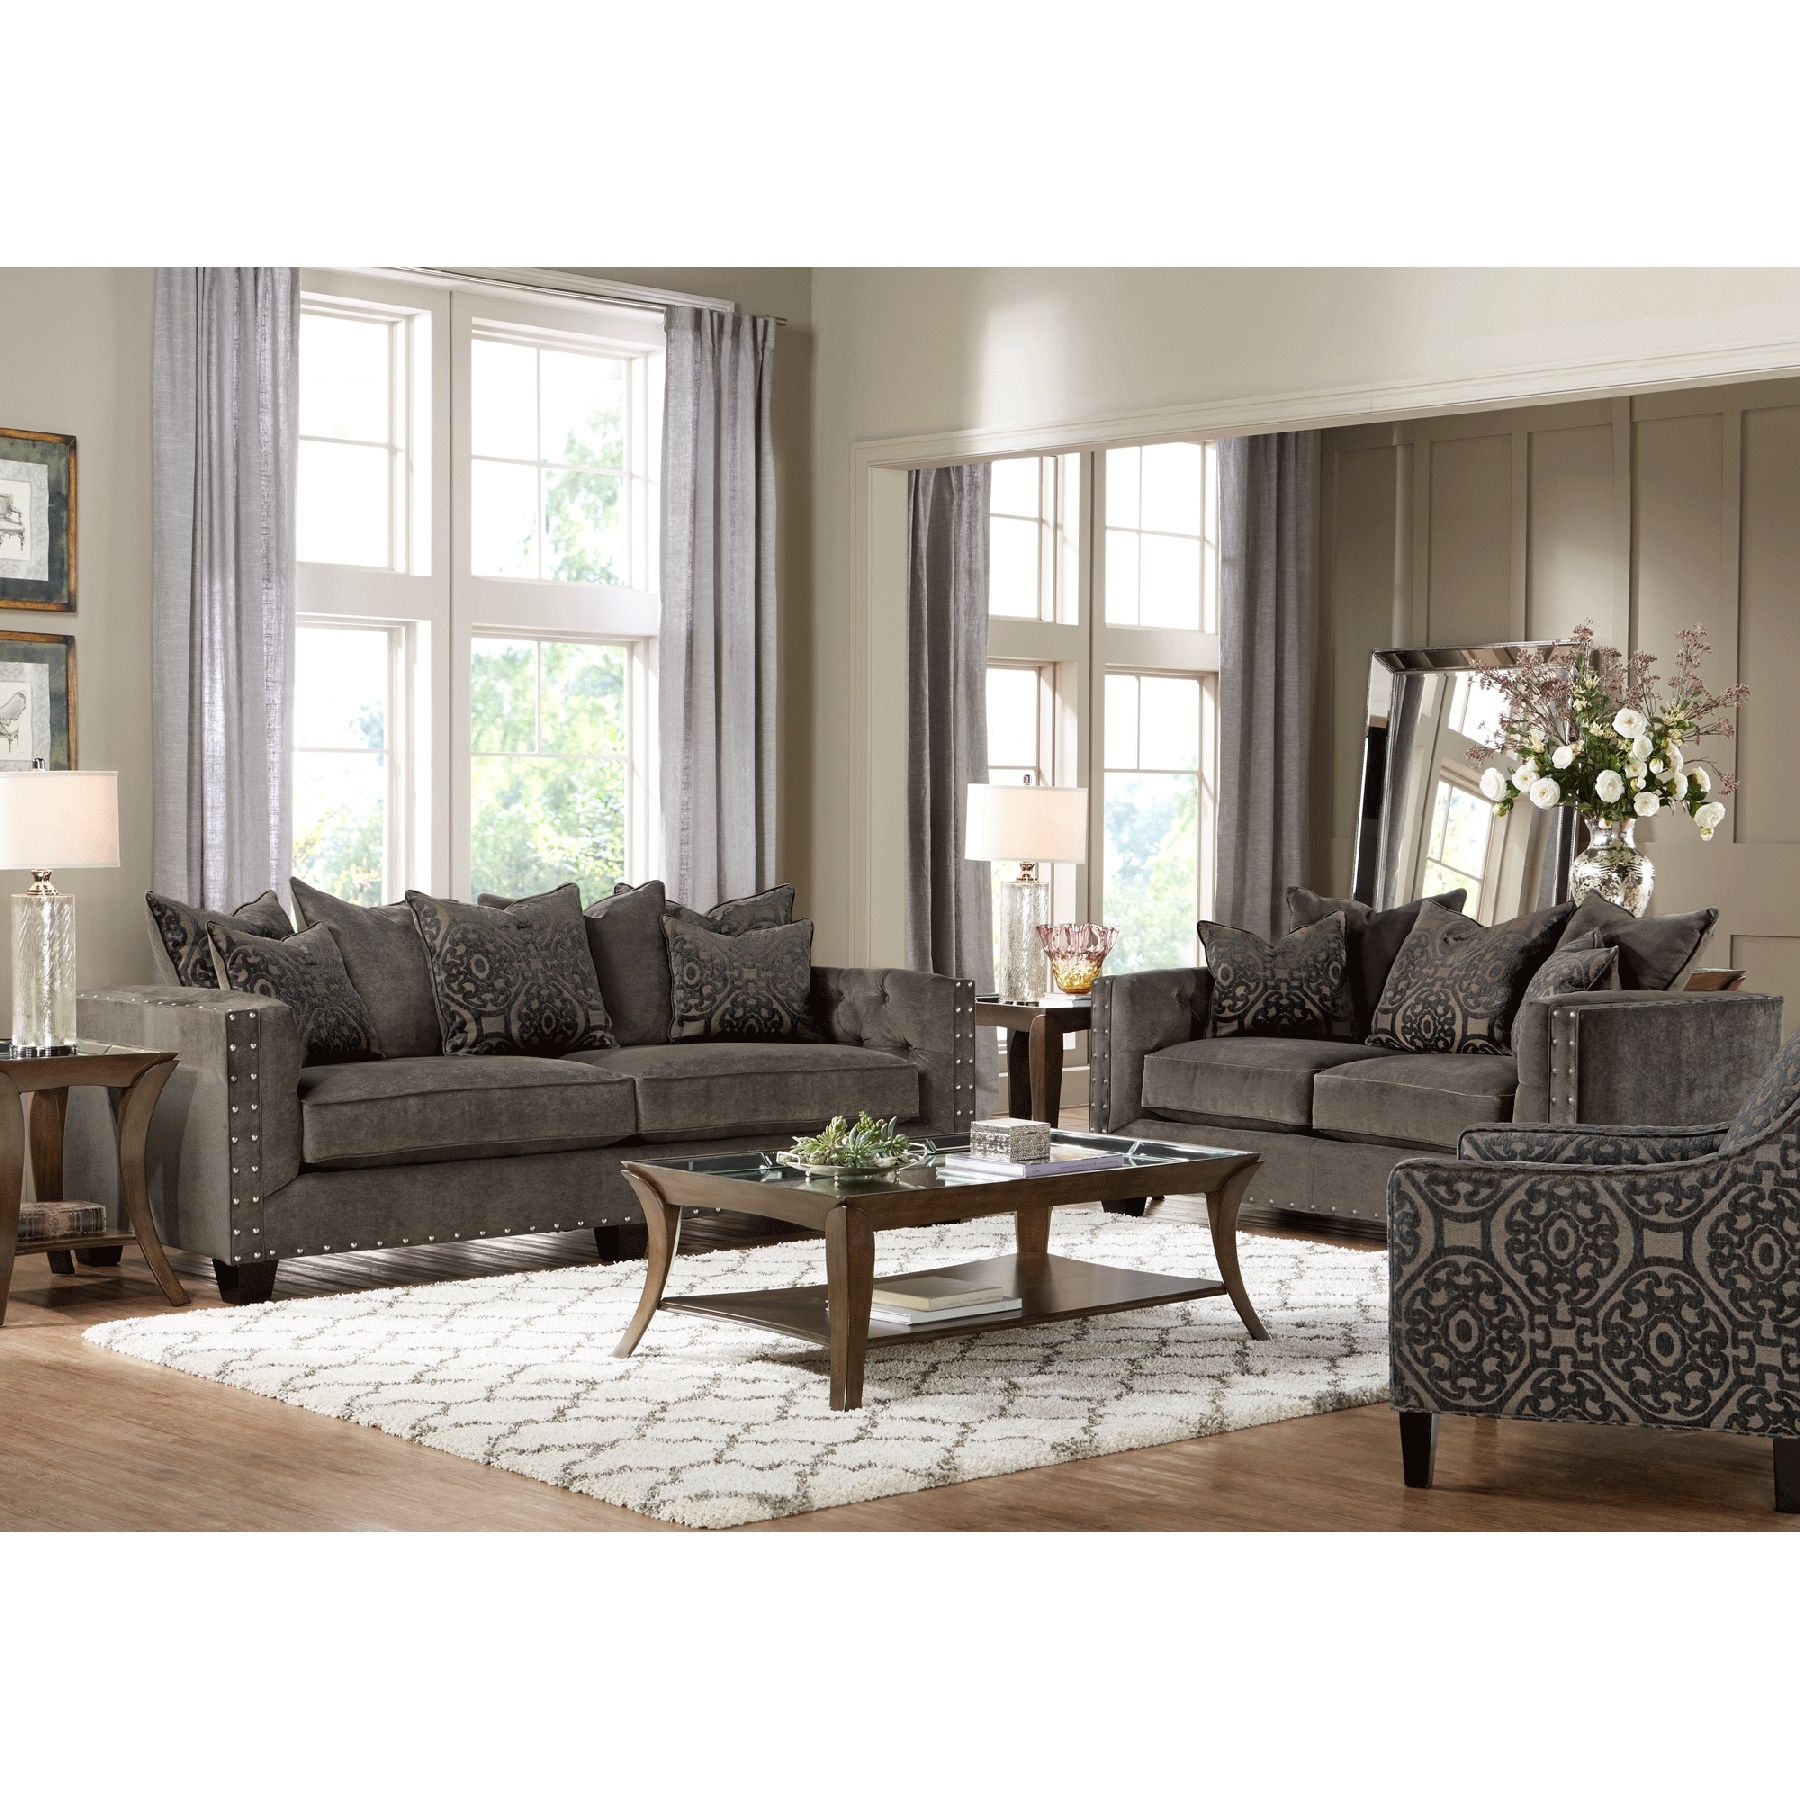 Cindy Crawford Home Decor: 15+ Cindy Crawford Home Sectional Sofa